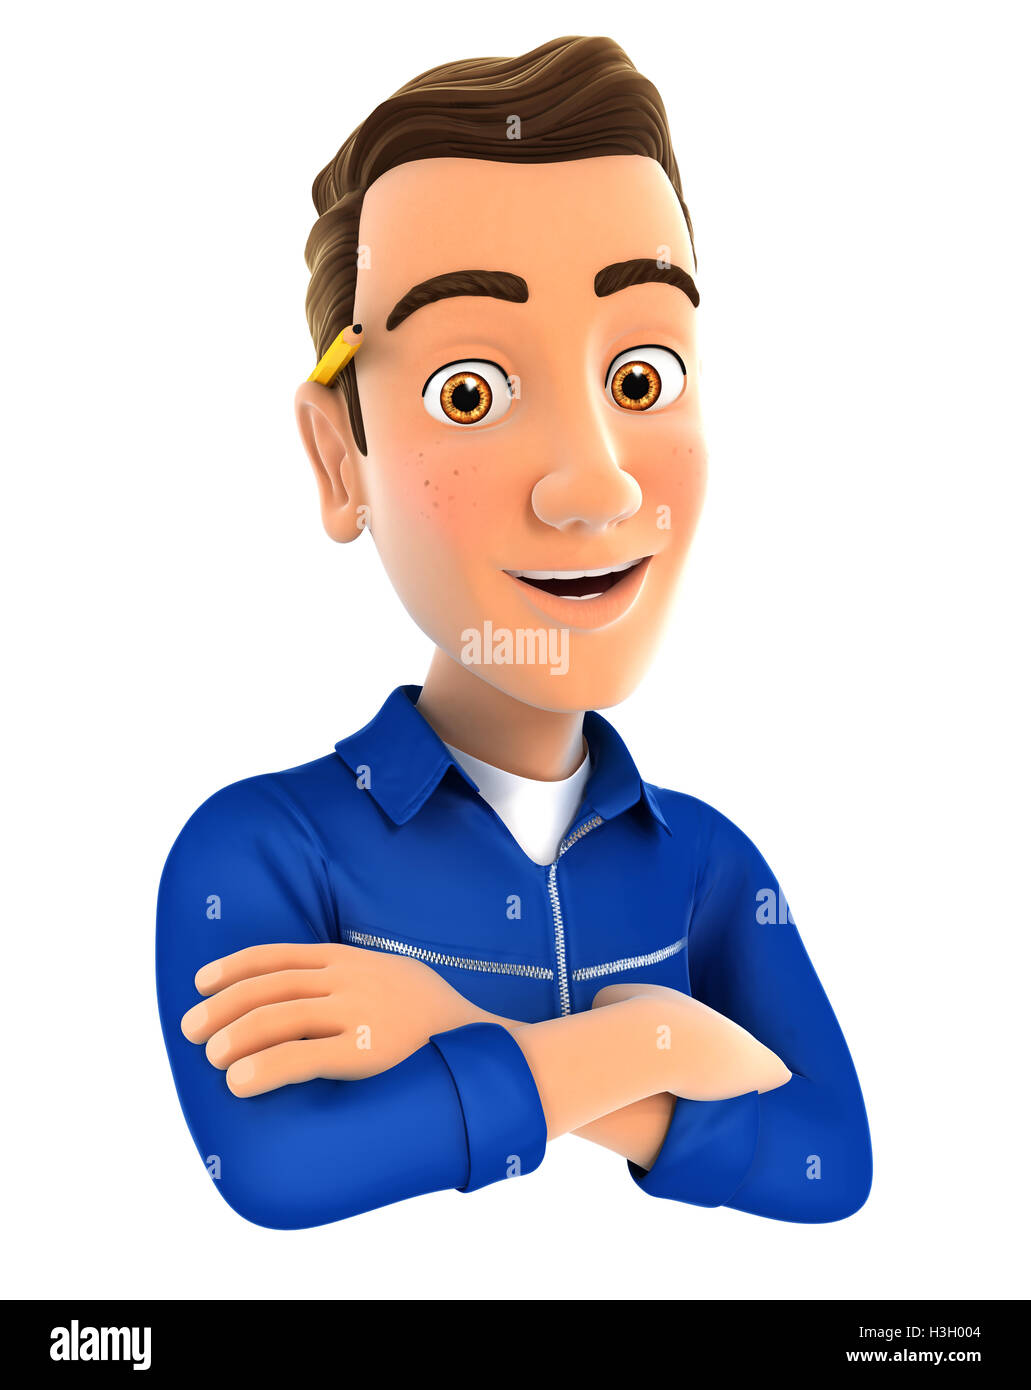 3d mechanic with arms crossed, illustration with isolated white background Stock Photo